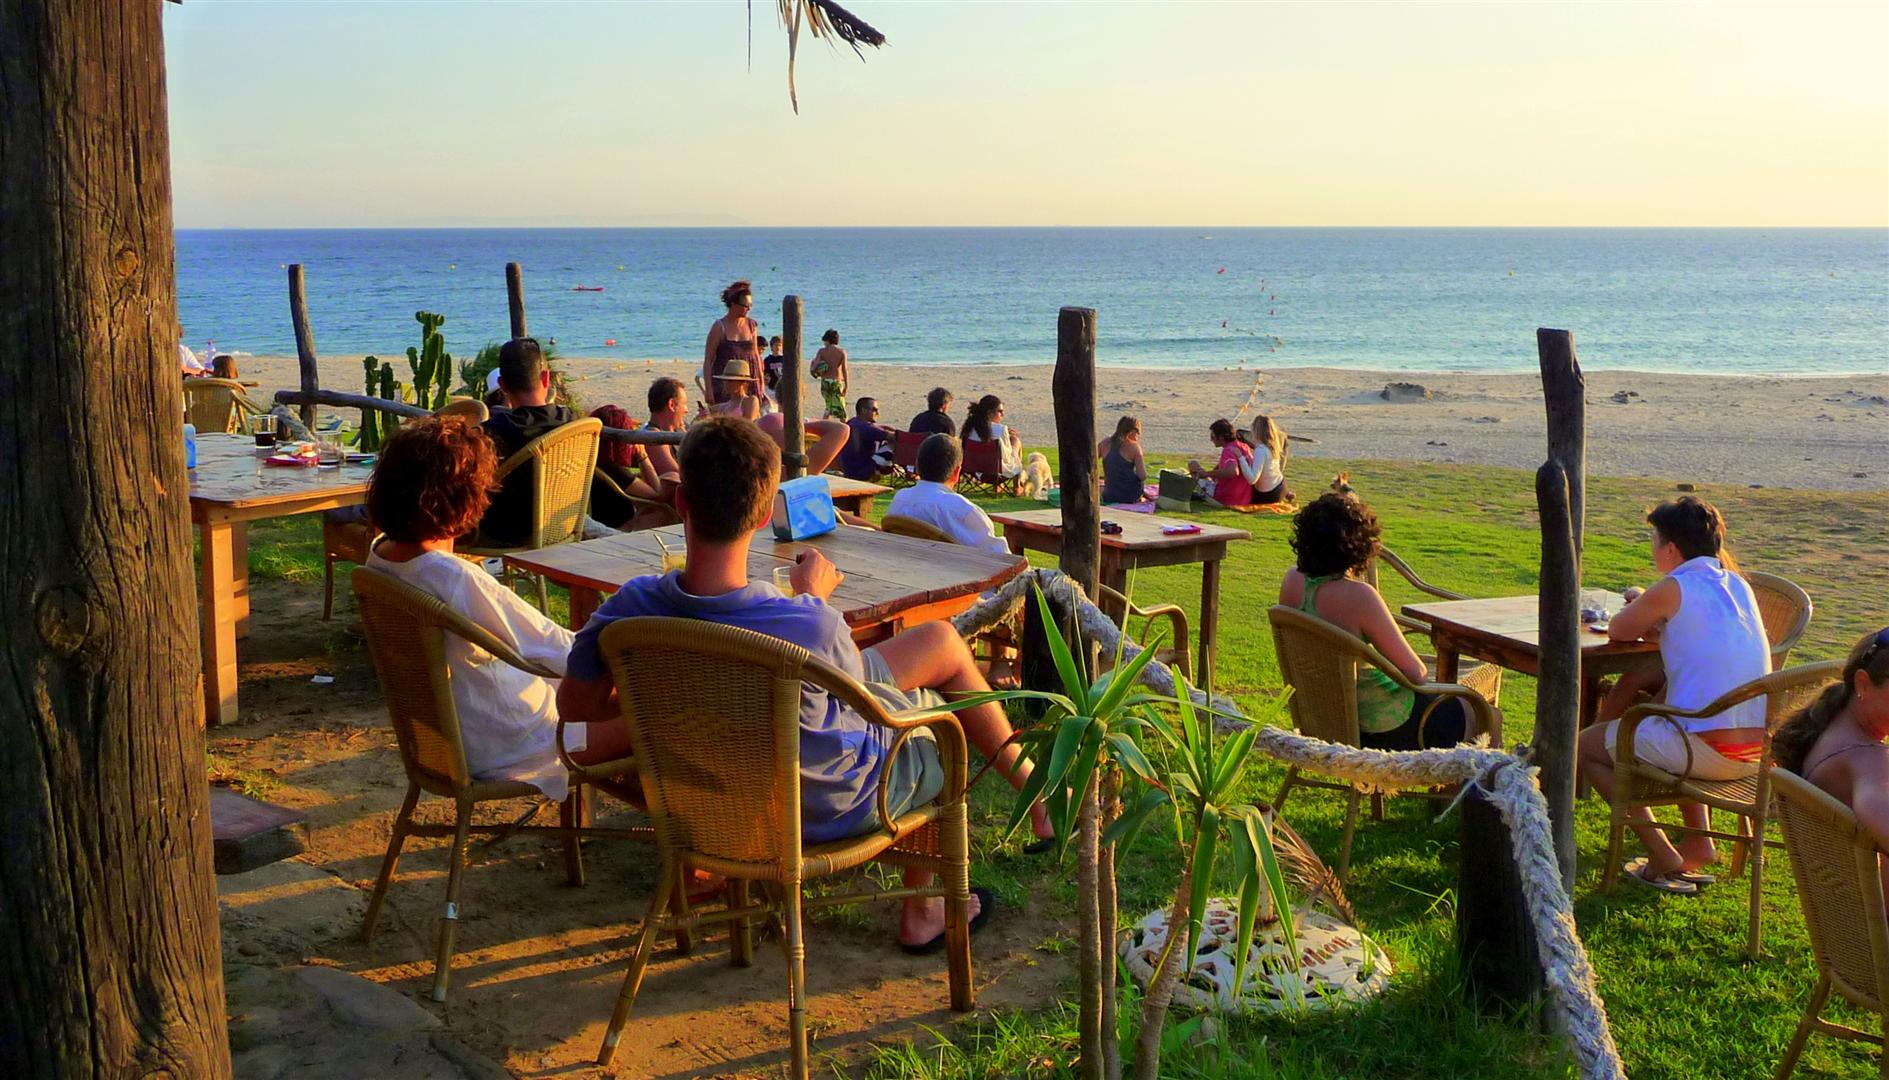 Beach bars in Catalonia as location for your audiovisual production